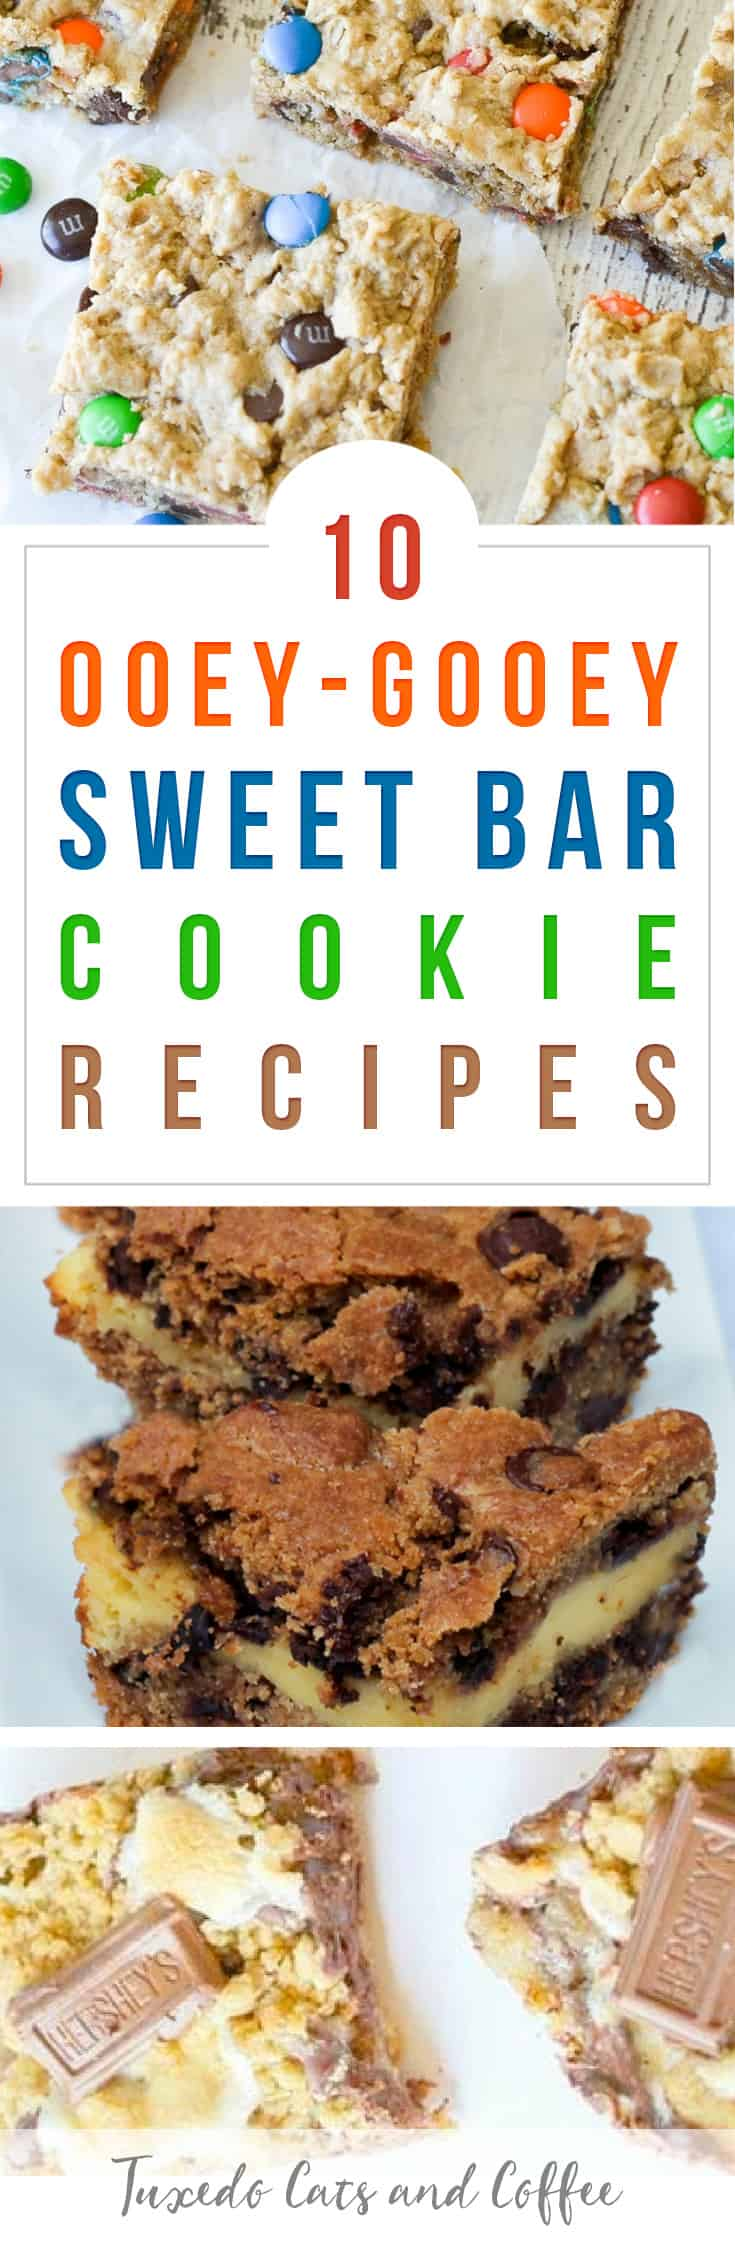 Looking for a delicious cookie recipe for your sweet tooth? Here are 10 ooey-gooey sweet bar cookie recipes for the Cookie Monster in you!